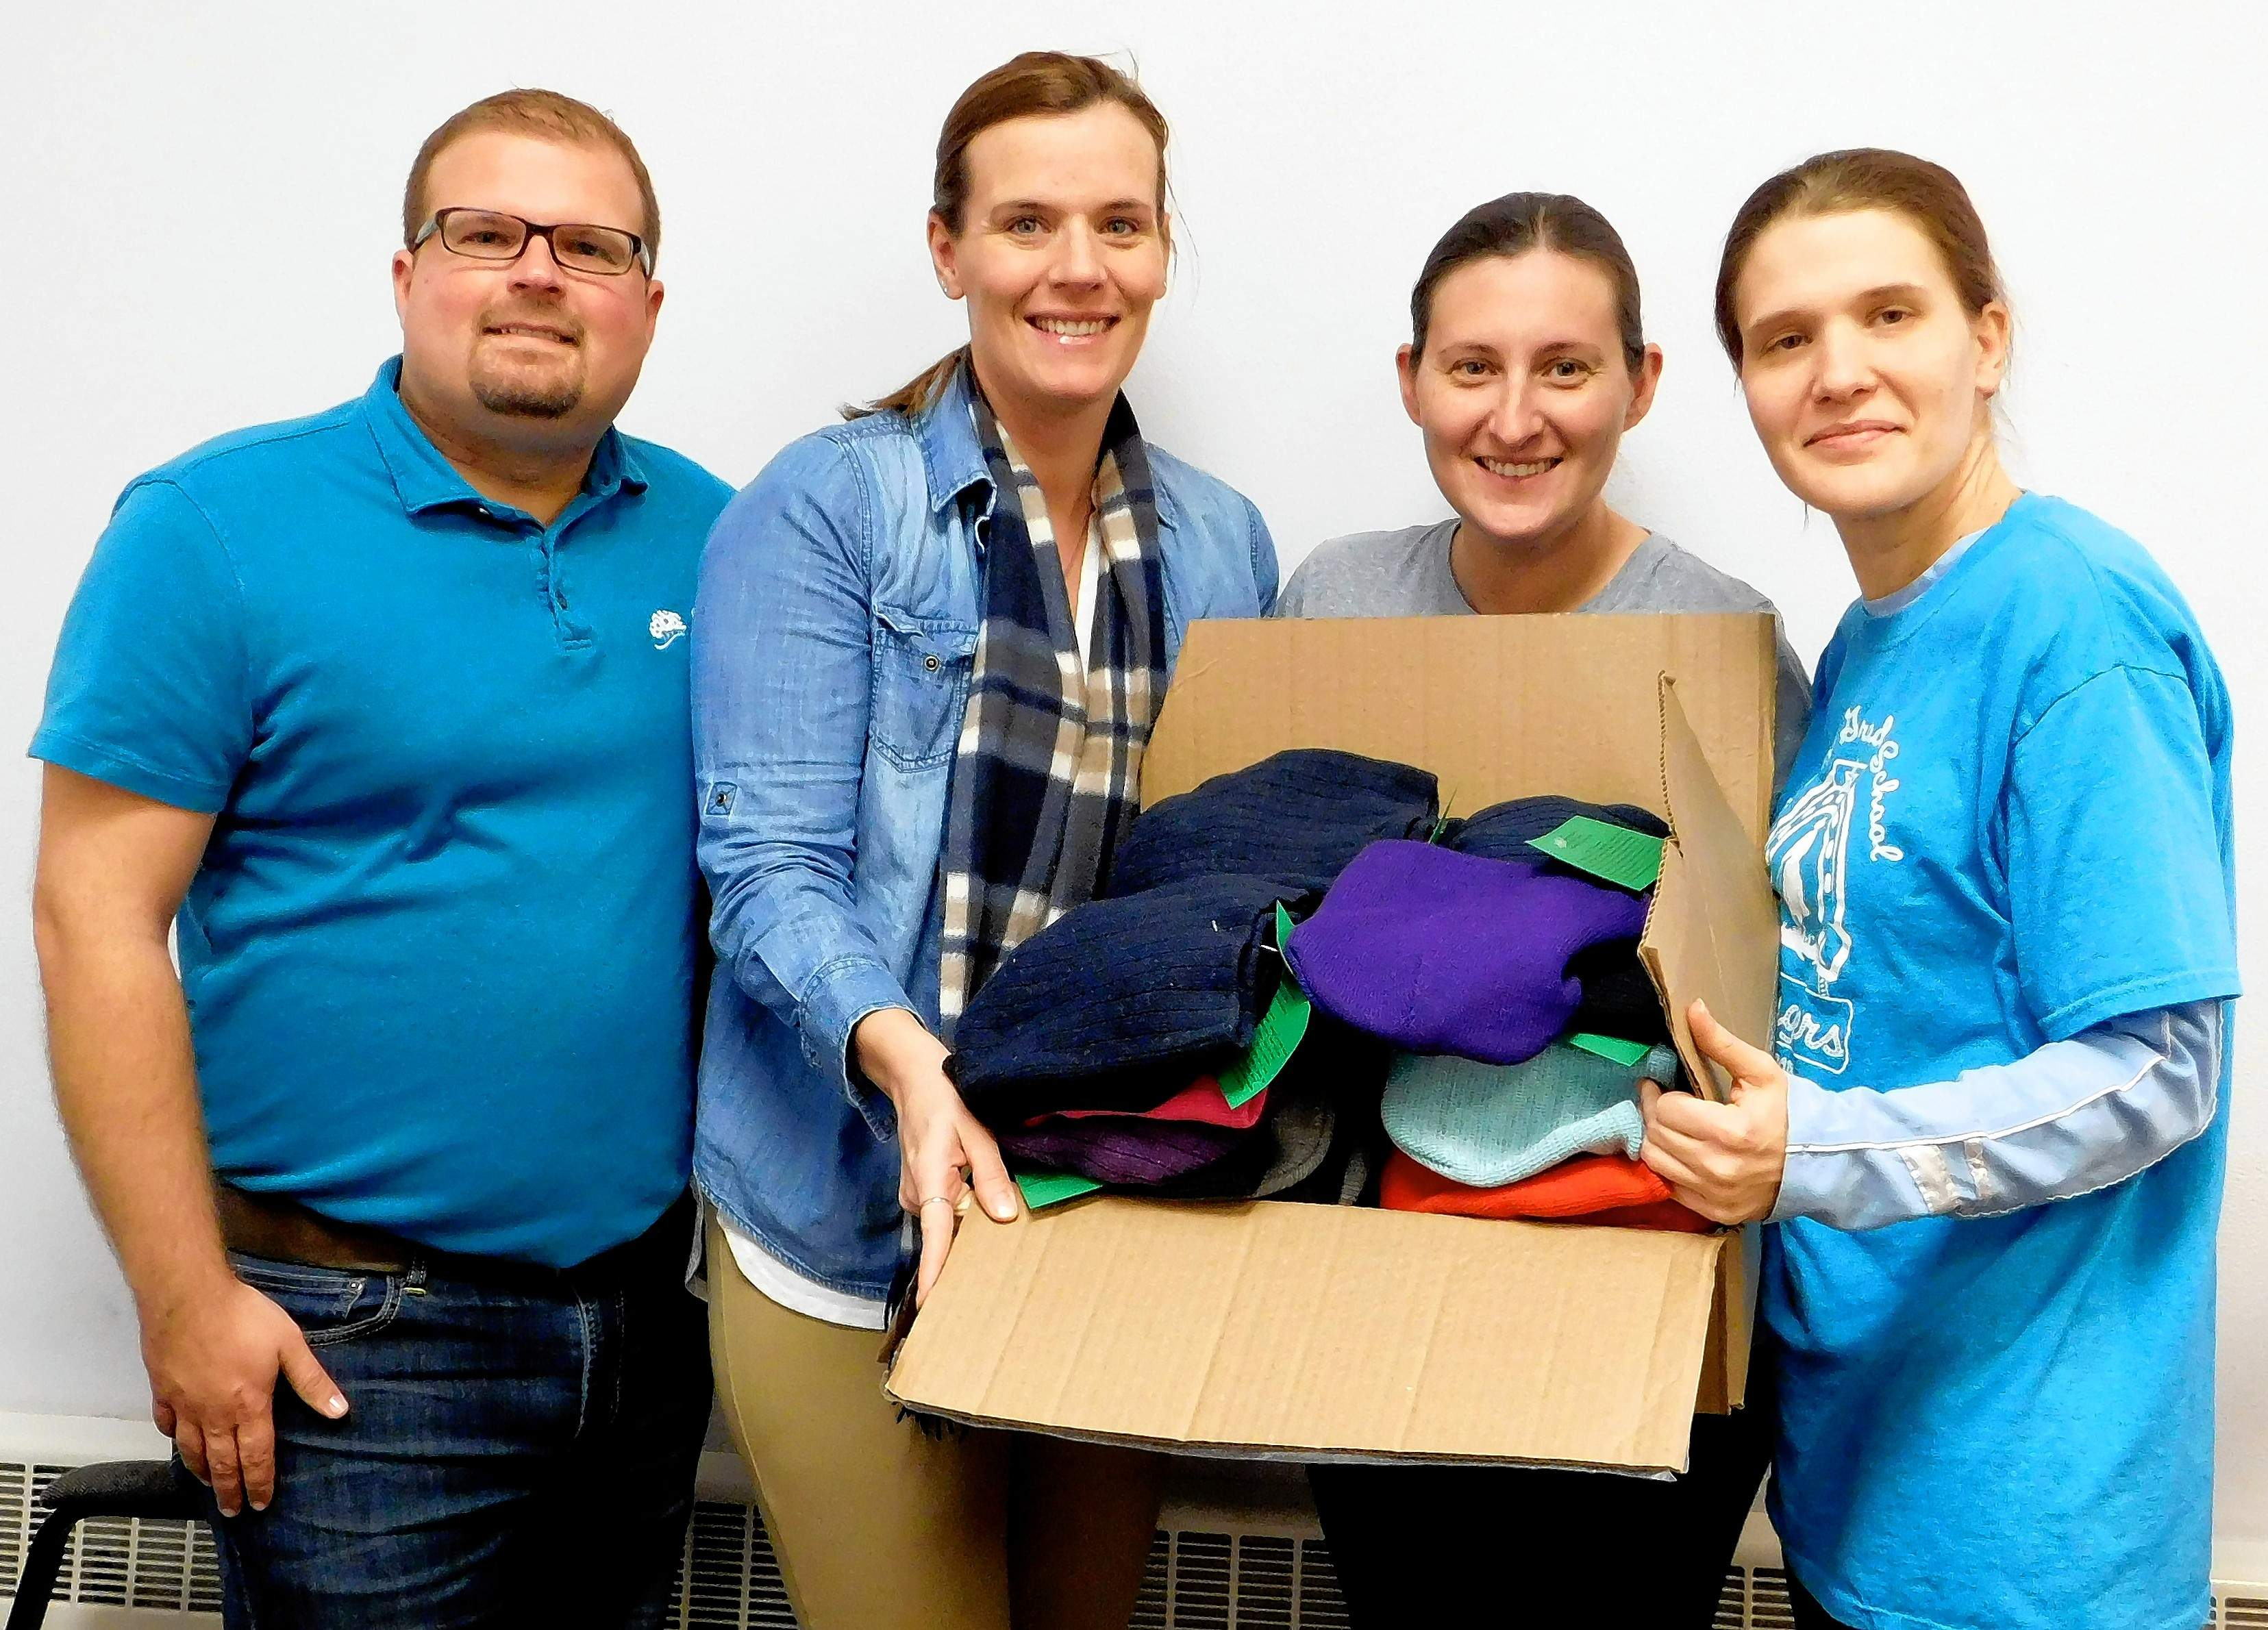 Festival organizers Steven Pate and Rachel Gartner donated a box full of hats and mittens to Benton Grade School PTO president Amanda Anderson and vice president Valerie Keller. 'This is amazing,' Anderson said. 'A lot of kids will benefit from this,' Keller added. The committee was left with about 300 sets of hats and mittens. CASA, the Benton Police Department and Southern Illinois Scarves also benefitted from the donations.